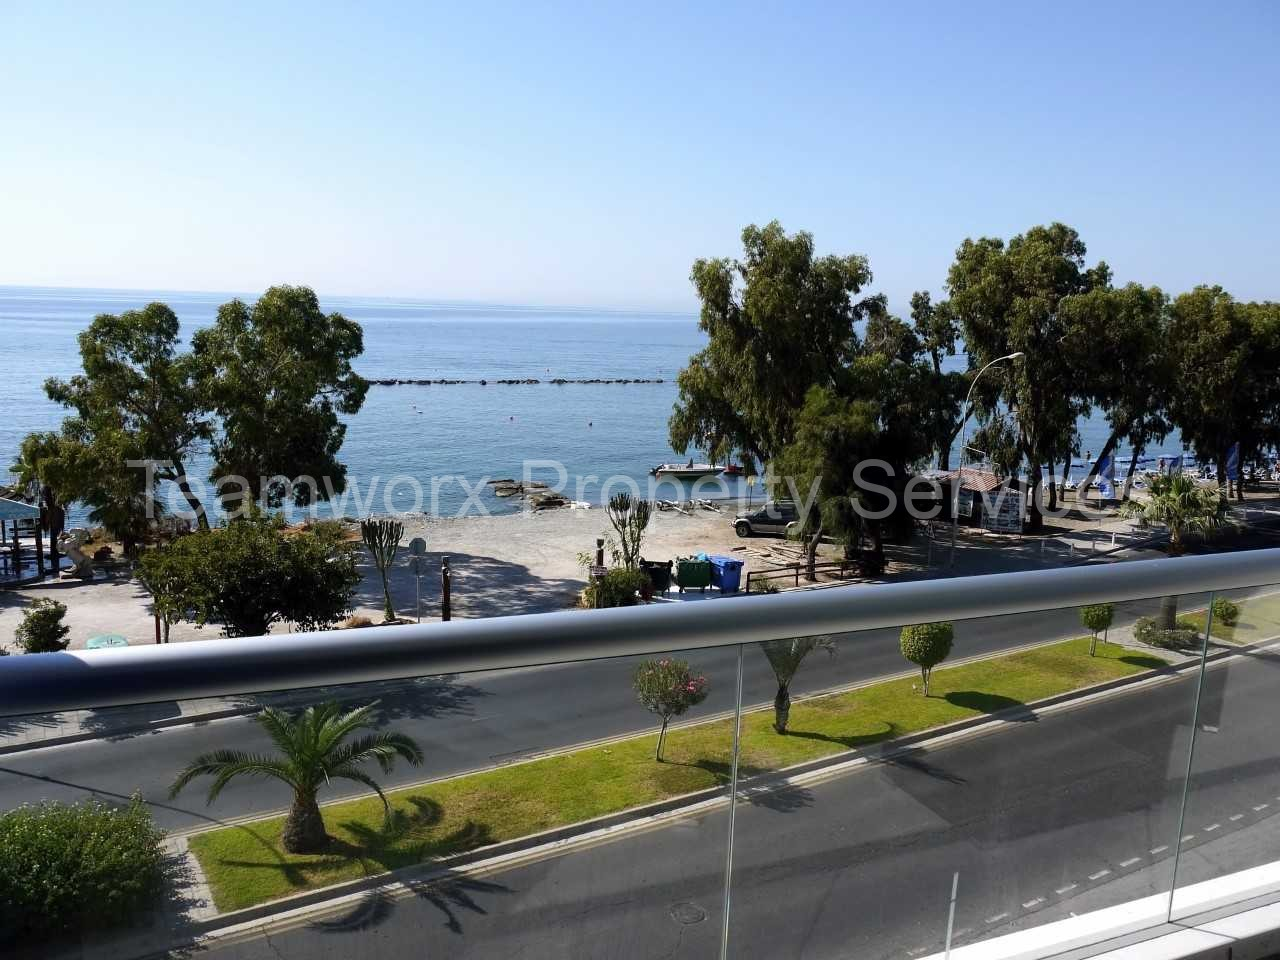 3 Bedroom flat at the sea front for Sale, Limassol